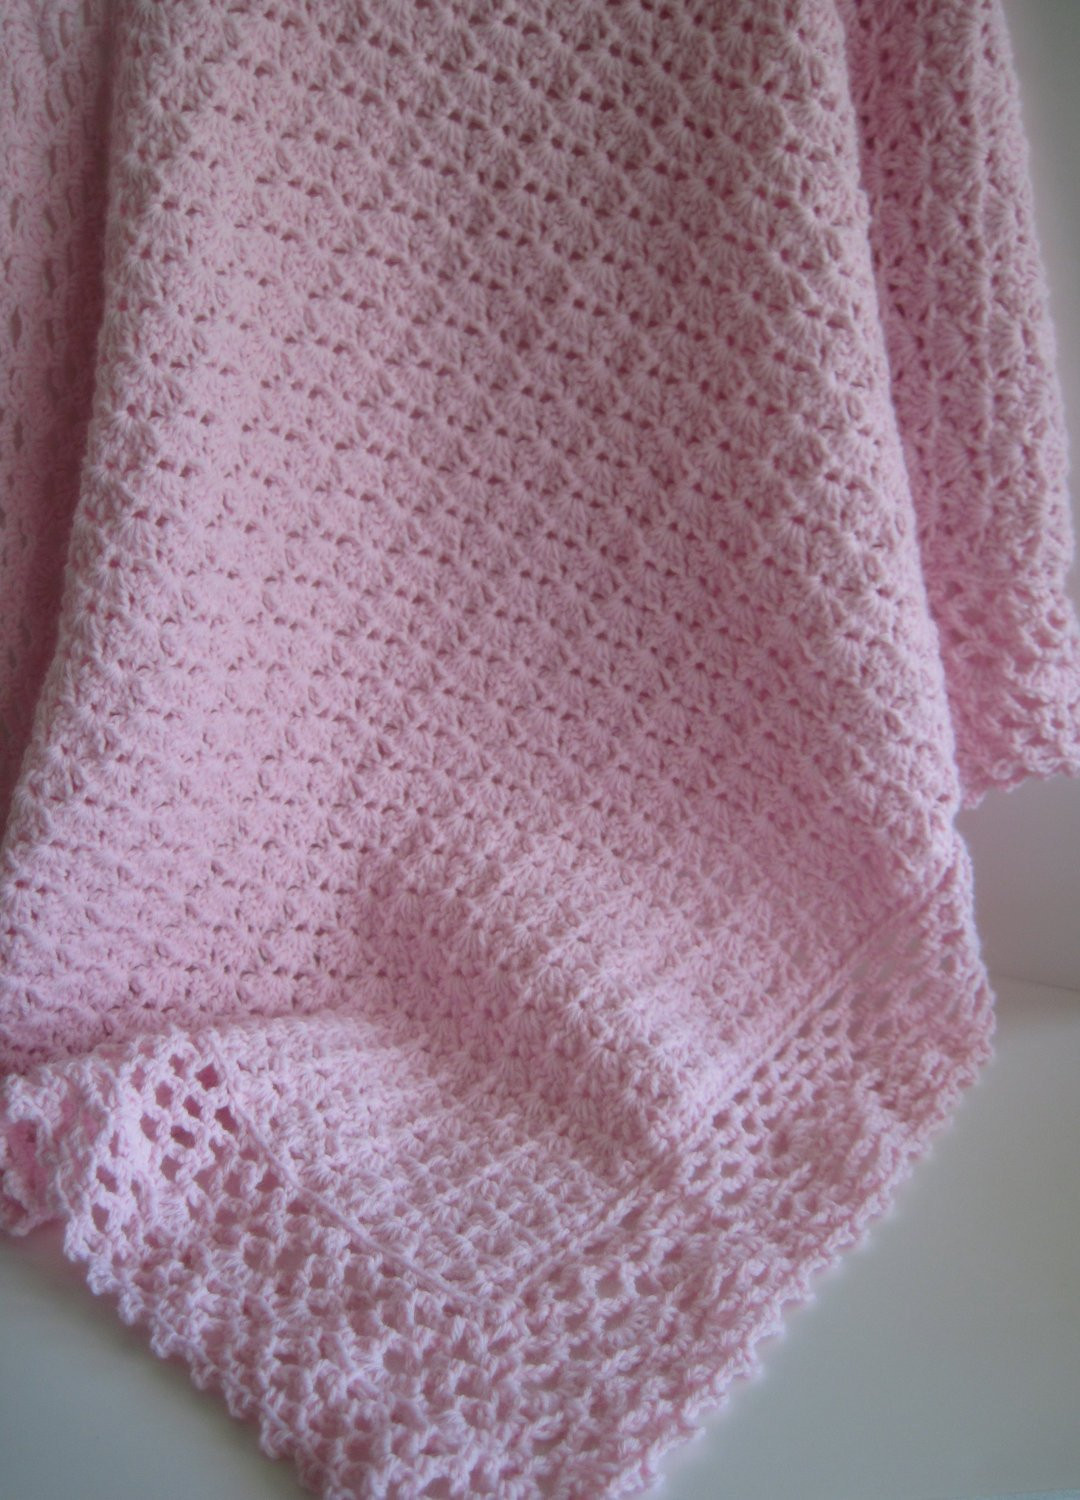 Lacy Crochet Baby Blanket Beautiful Pink Crochet Baby Blanket Afghan with Lacy Edging Of Top 48 Ideas Lacy Crochet Baby Blanket